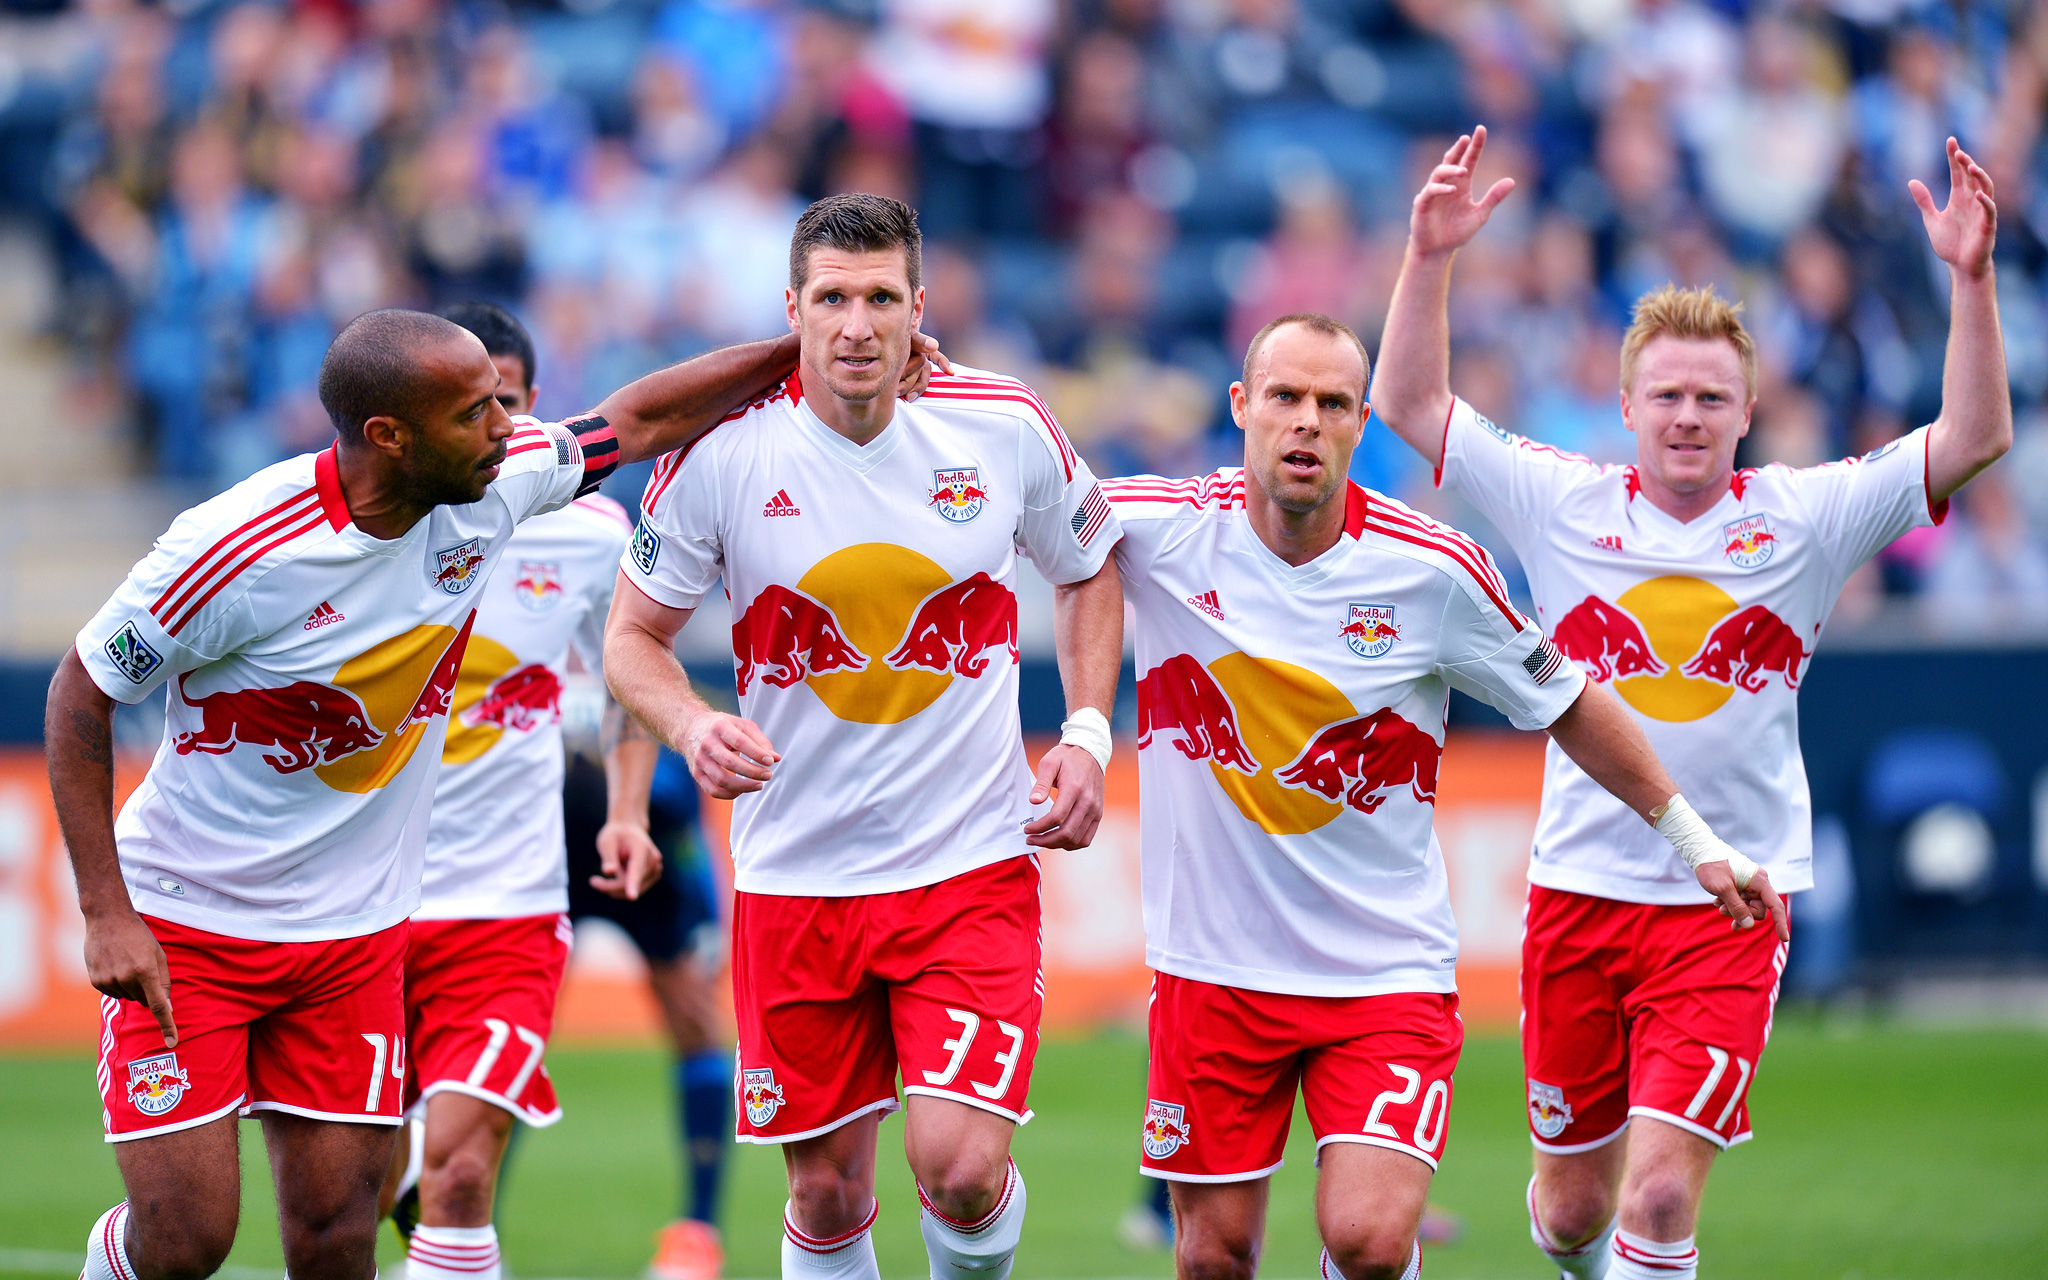 The New York Red Bulls